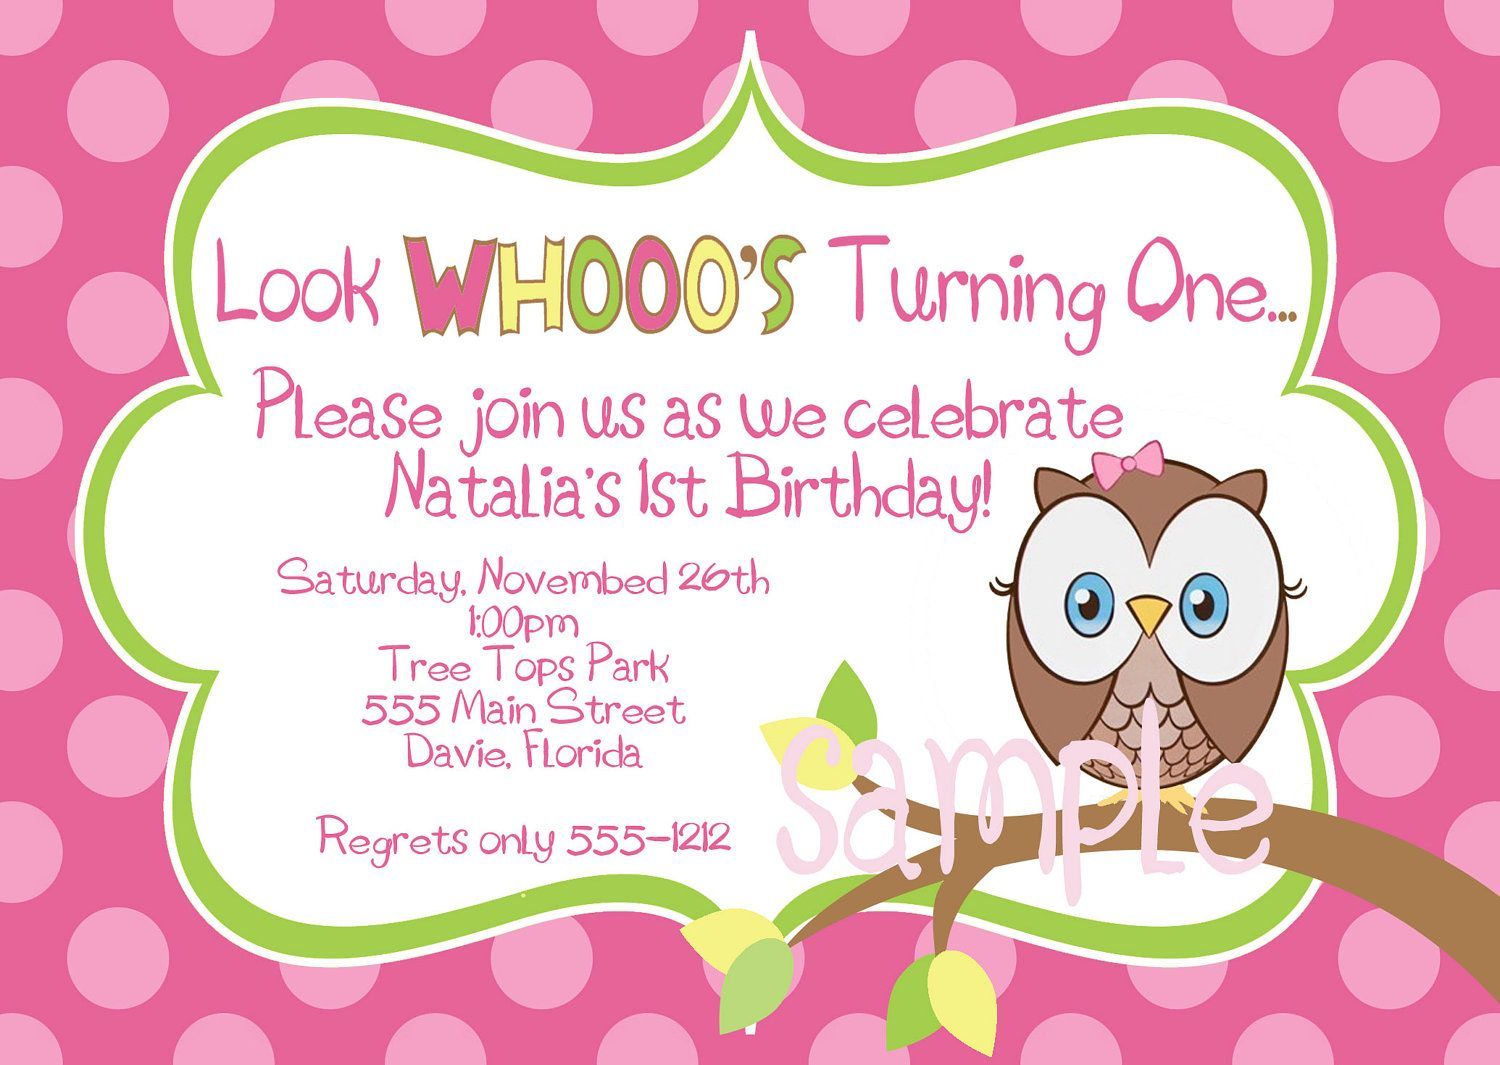 Hoot owl birthday party invitation in hot pink lime yellow brown hoot owl birthday party invitation in hot pink lime yellow brown digital filmwisefo Image collections